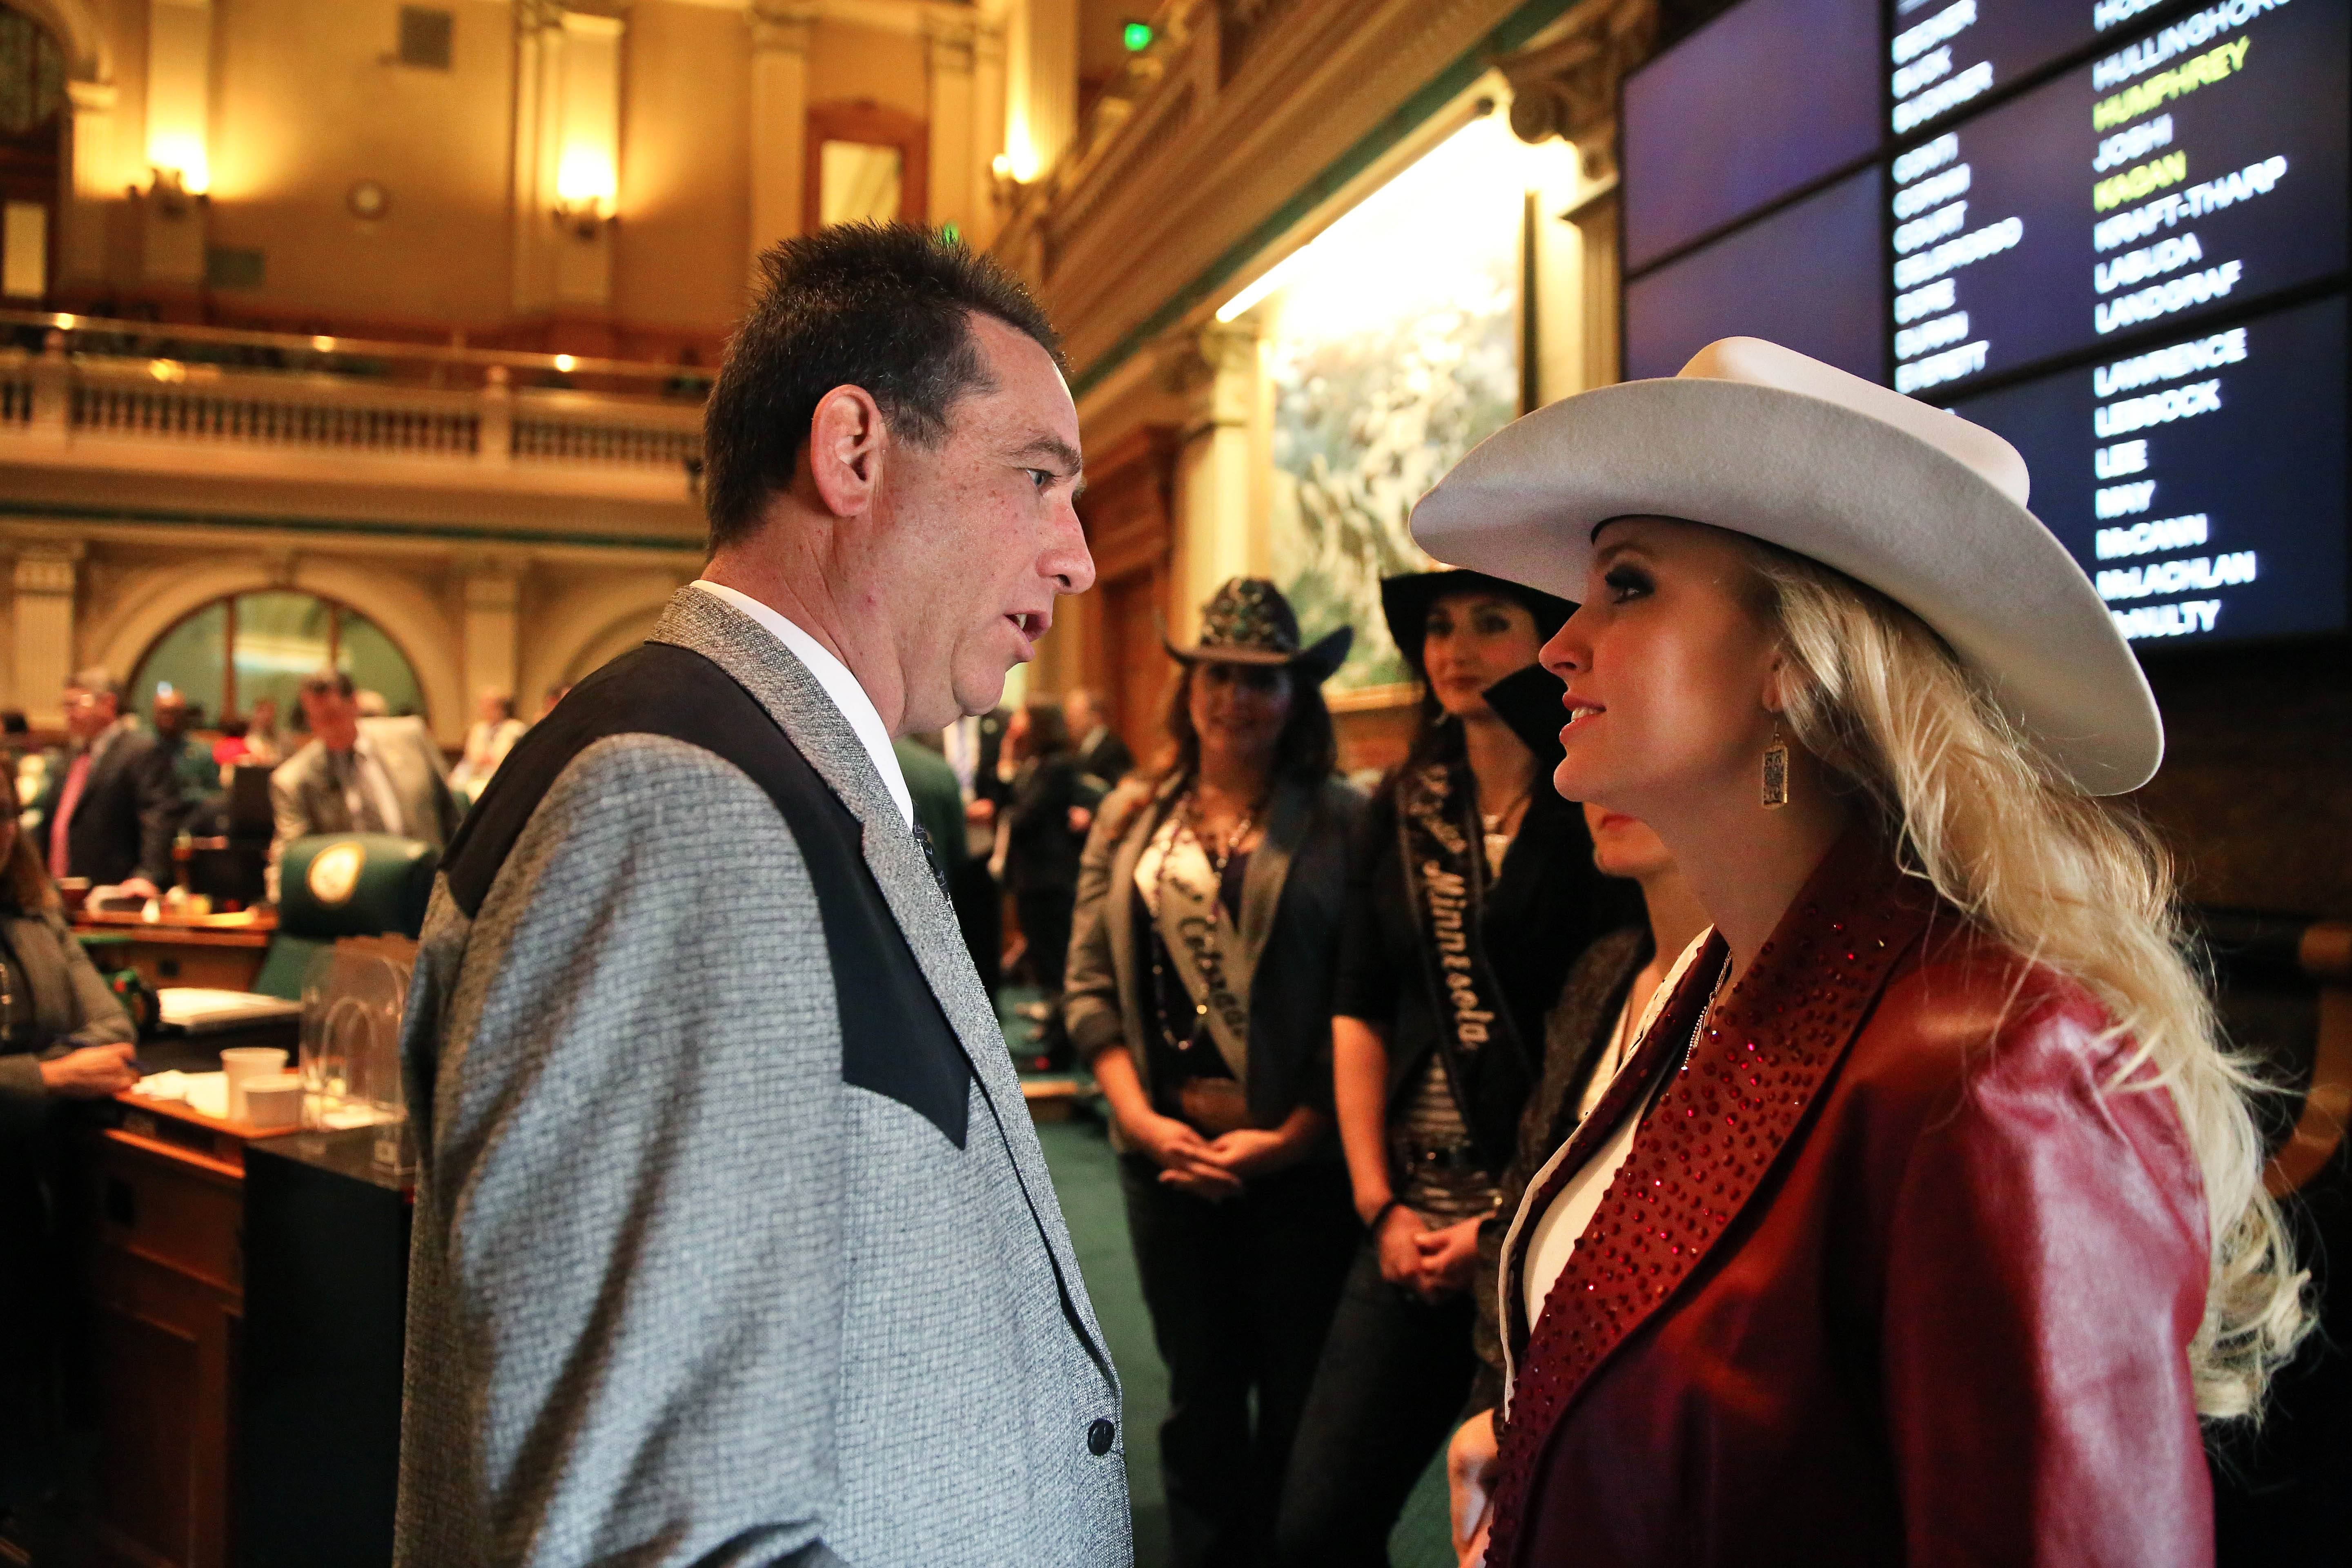 Republican Colorado state representative Jerry Sonnenberg talks with Miss Rodeo America Paige Nicholson, inside the chambers of the Colorado State Legislature, at the Capitol, in Denver. Nicholson was in town for the National Western Stock Show. Sonnenberg, a rancher who's the only farmer in the Colorado House, plans to push a radical idea this session: give each of his state's 64 counties one House seat apiece instead of electing representatives from districts with equal populations.